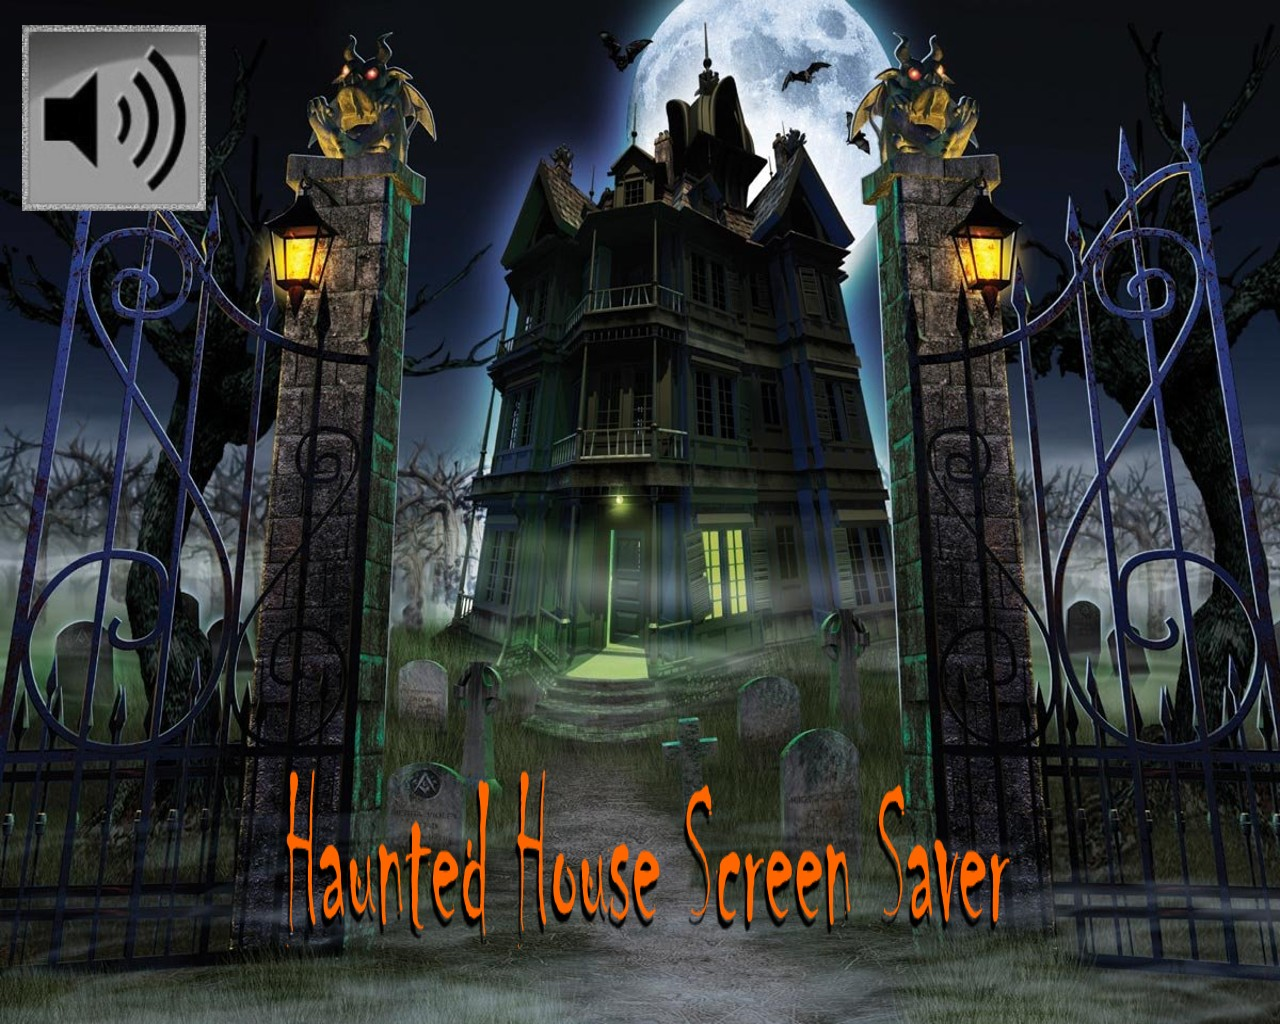 haunted house wallpaper with sound - photo #2